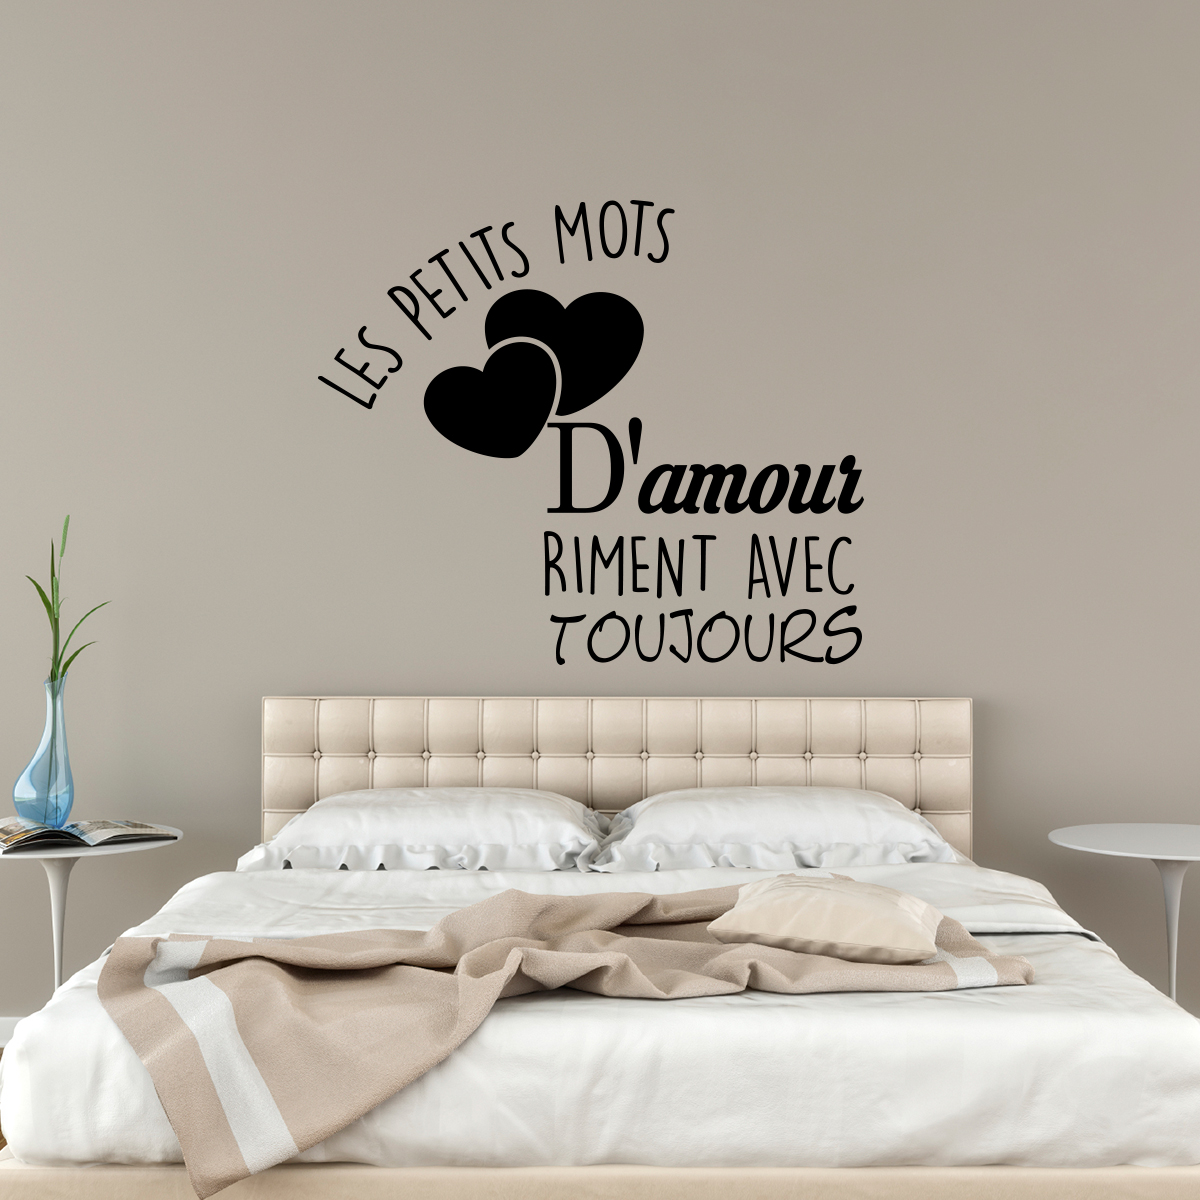 Sticker Les petits mots damour  Stickers STICKERS CITATIONS Franais  Ambiancesticker